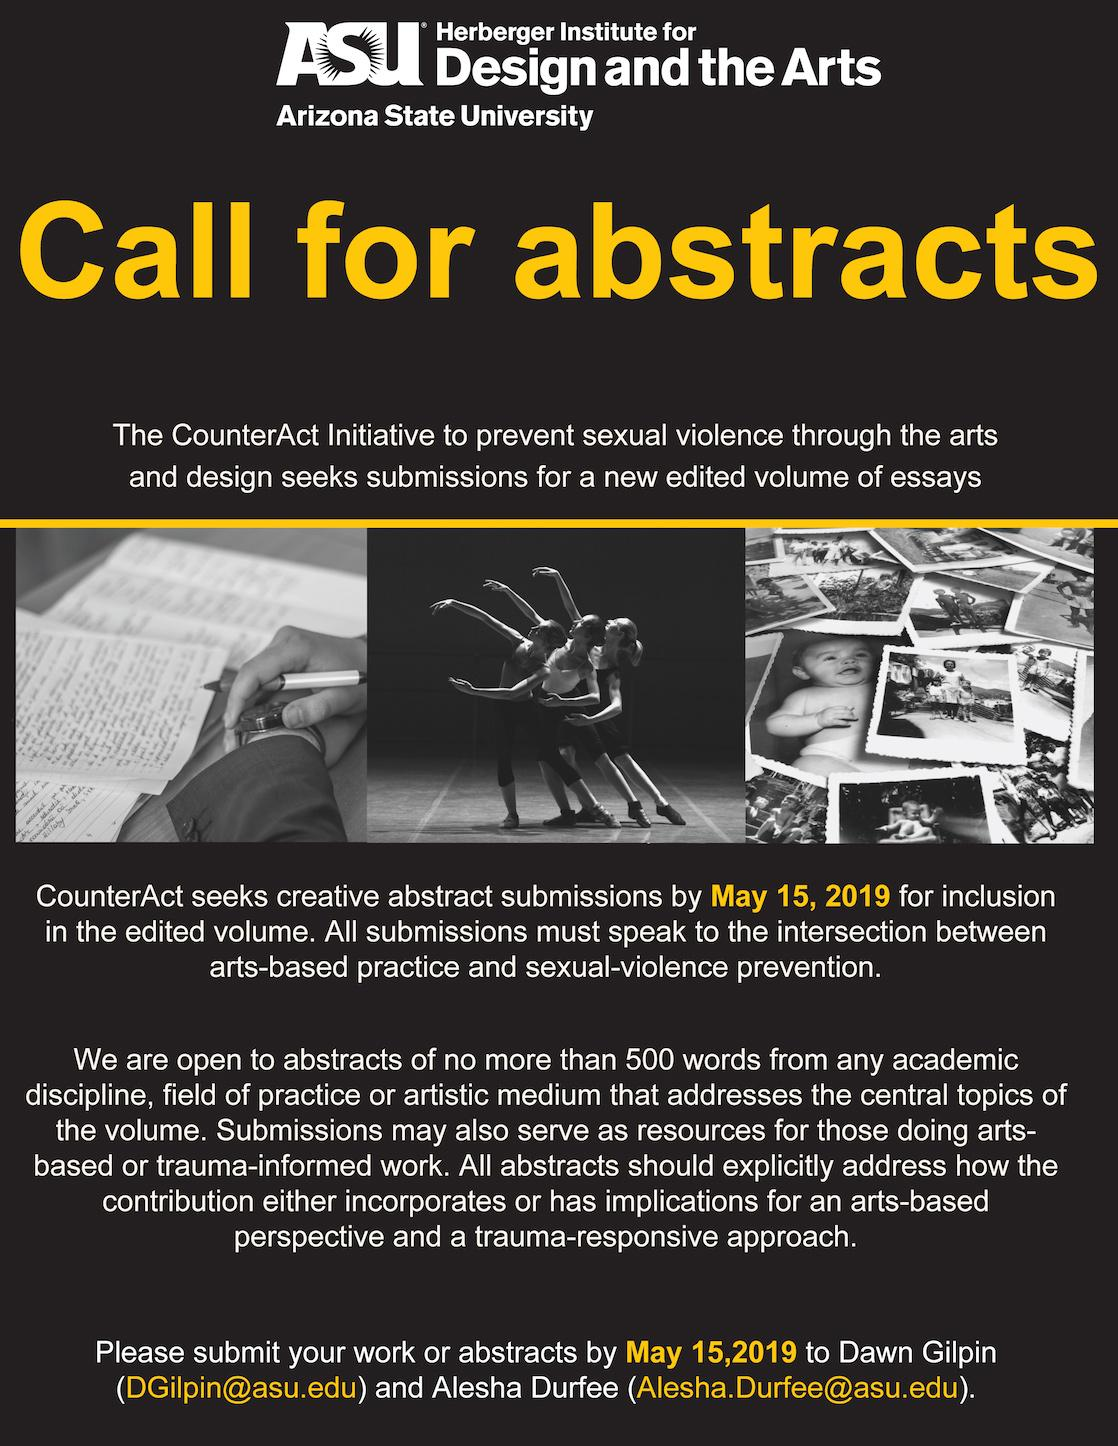 CounterAct - Call for abstracts poster - due May 15, 2019